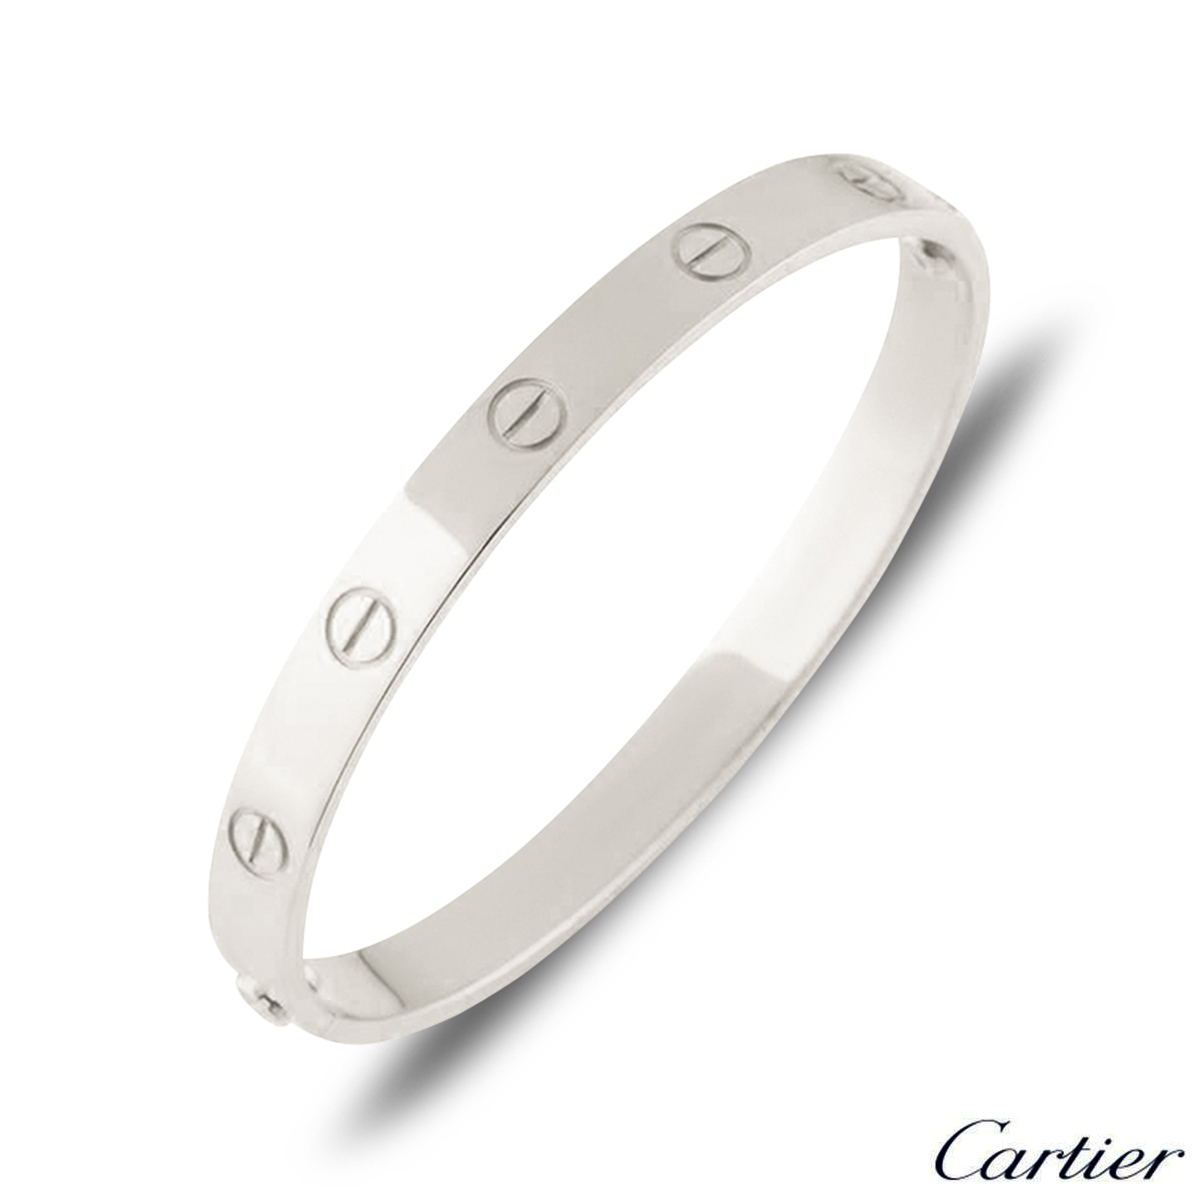 Cartier White Gold Plain Love Bracelet Size 20 B6035420